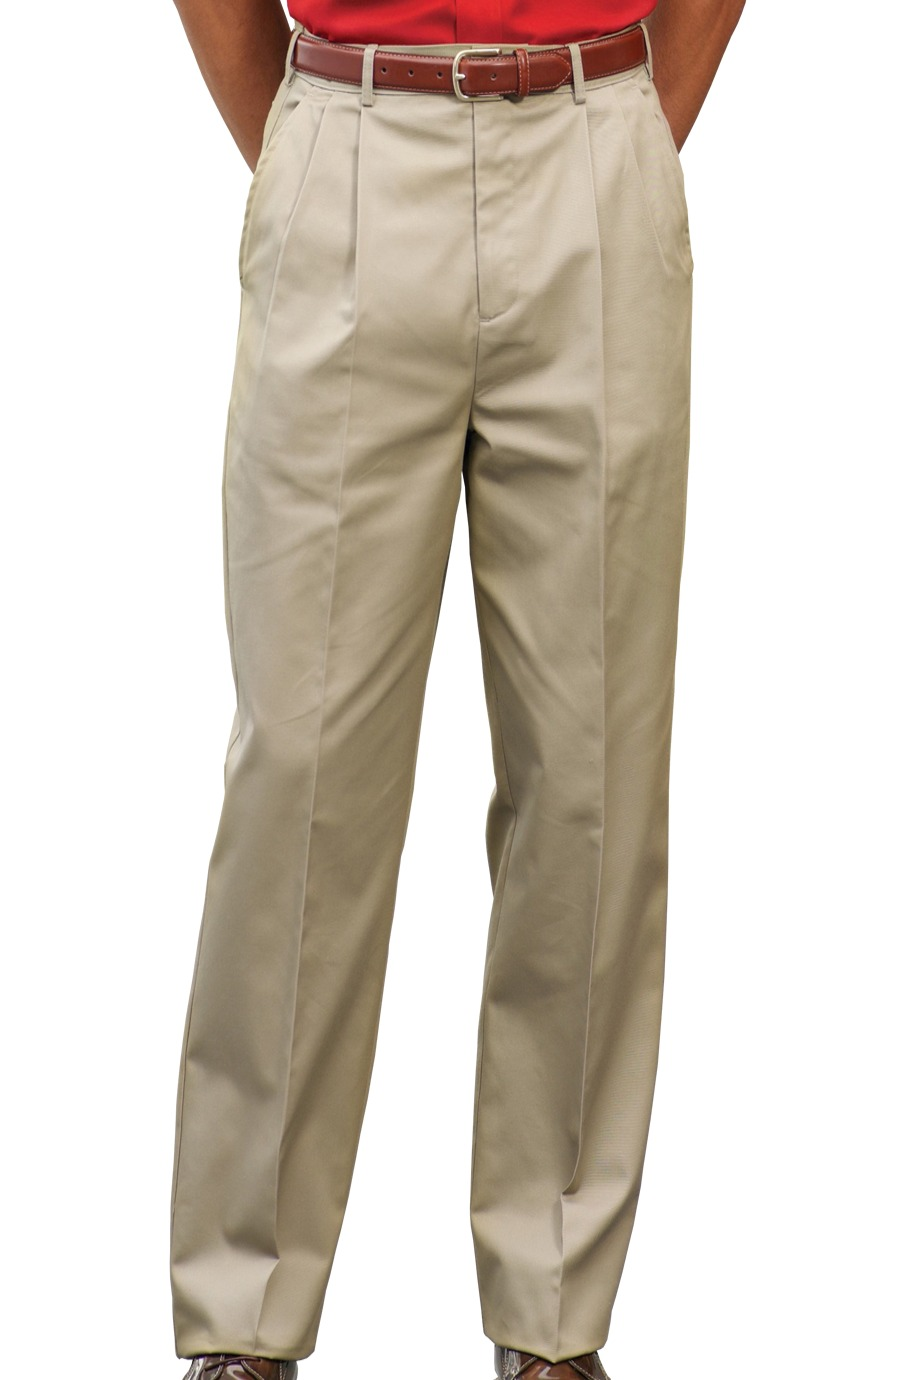 Edwards Garment 2677 - Men's Utility Pleated Pant